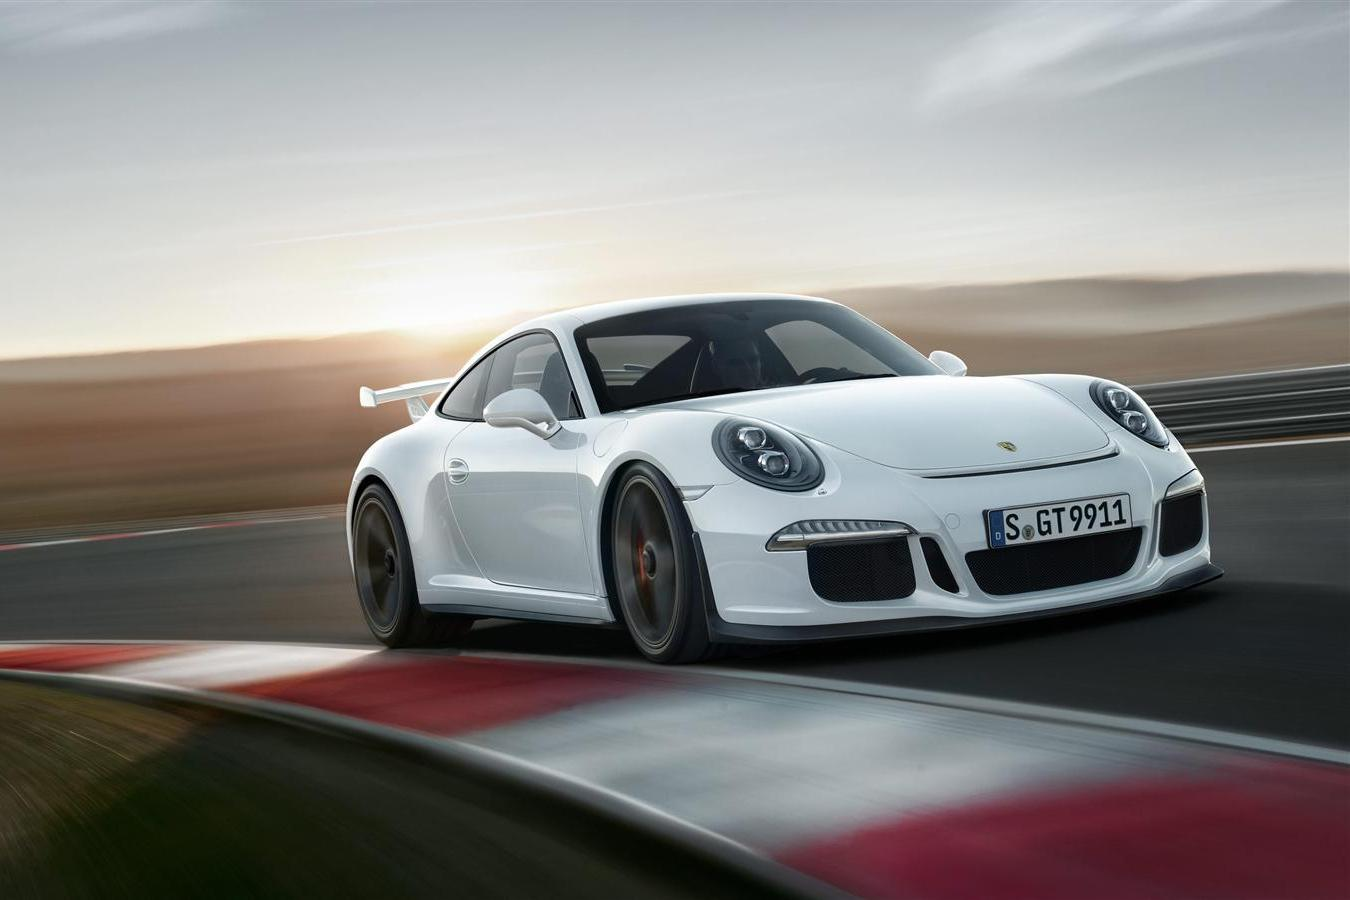 porsche 2015 gt3 rs. leaked spec sheet reveals details of the new porsche 911 gt3 rs ahead geneva unveiling 2015 gt3 rs